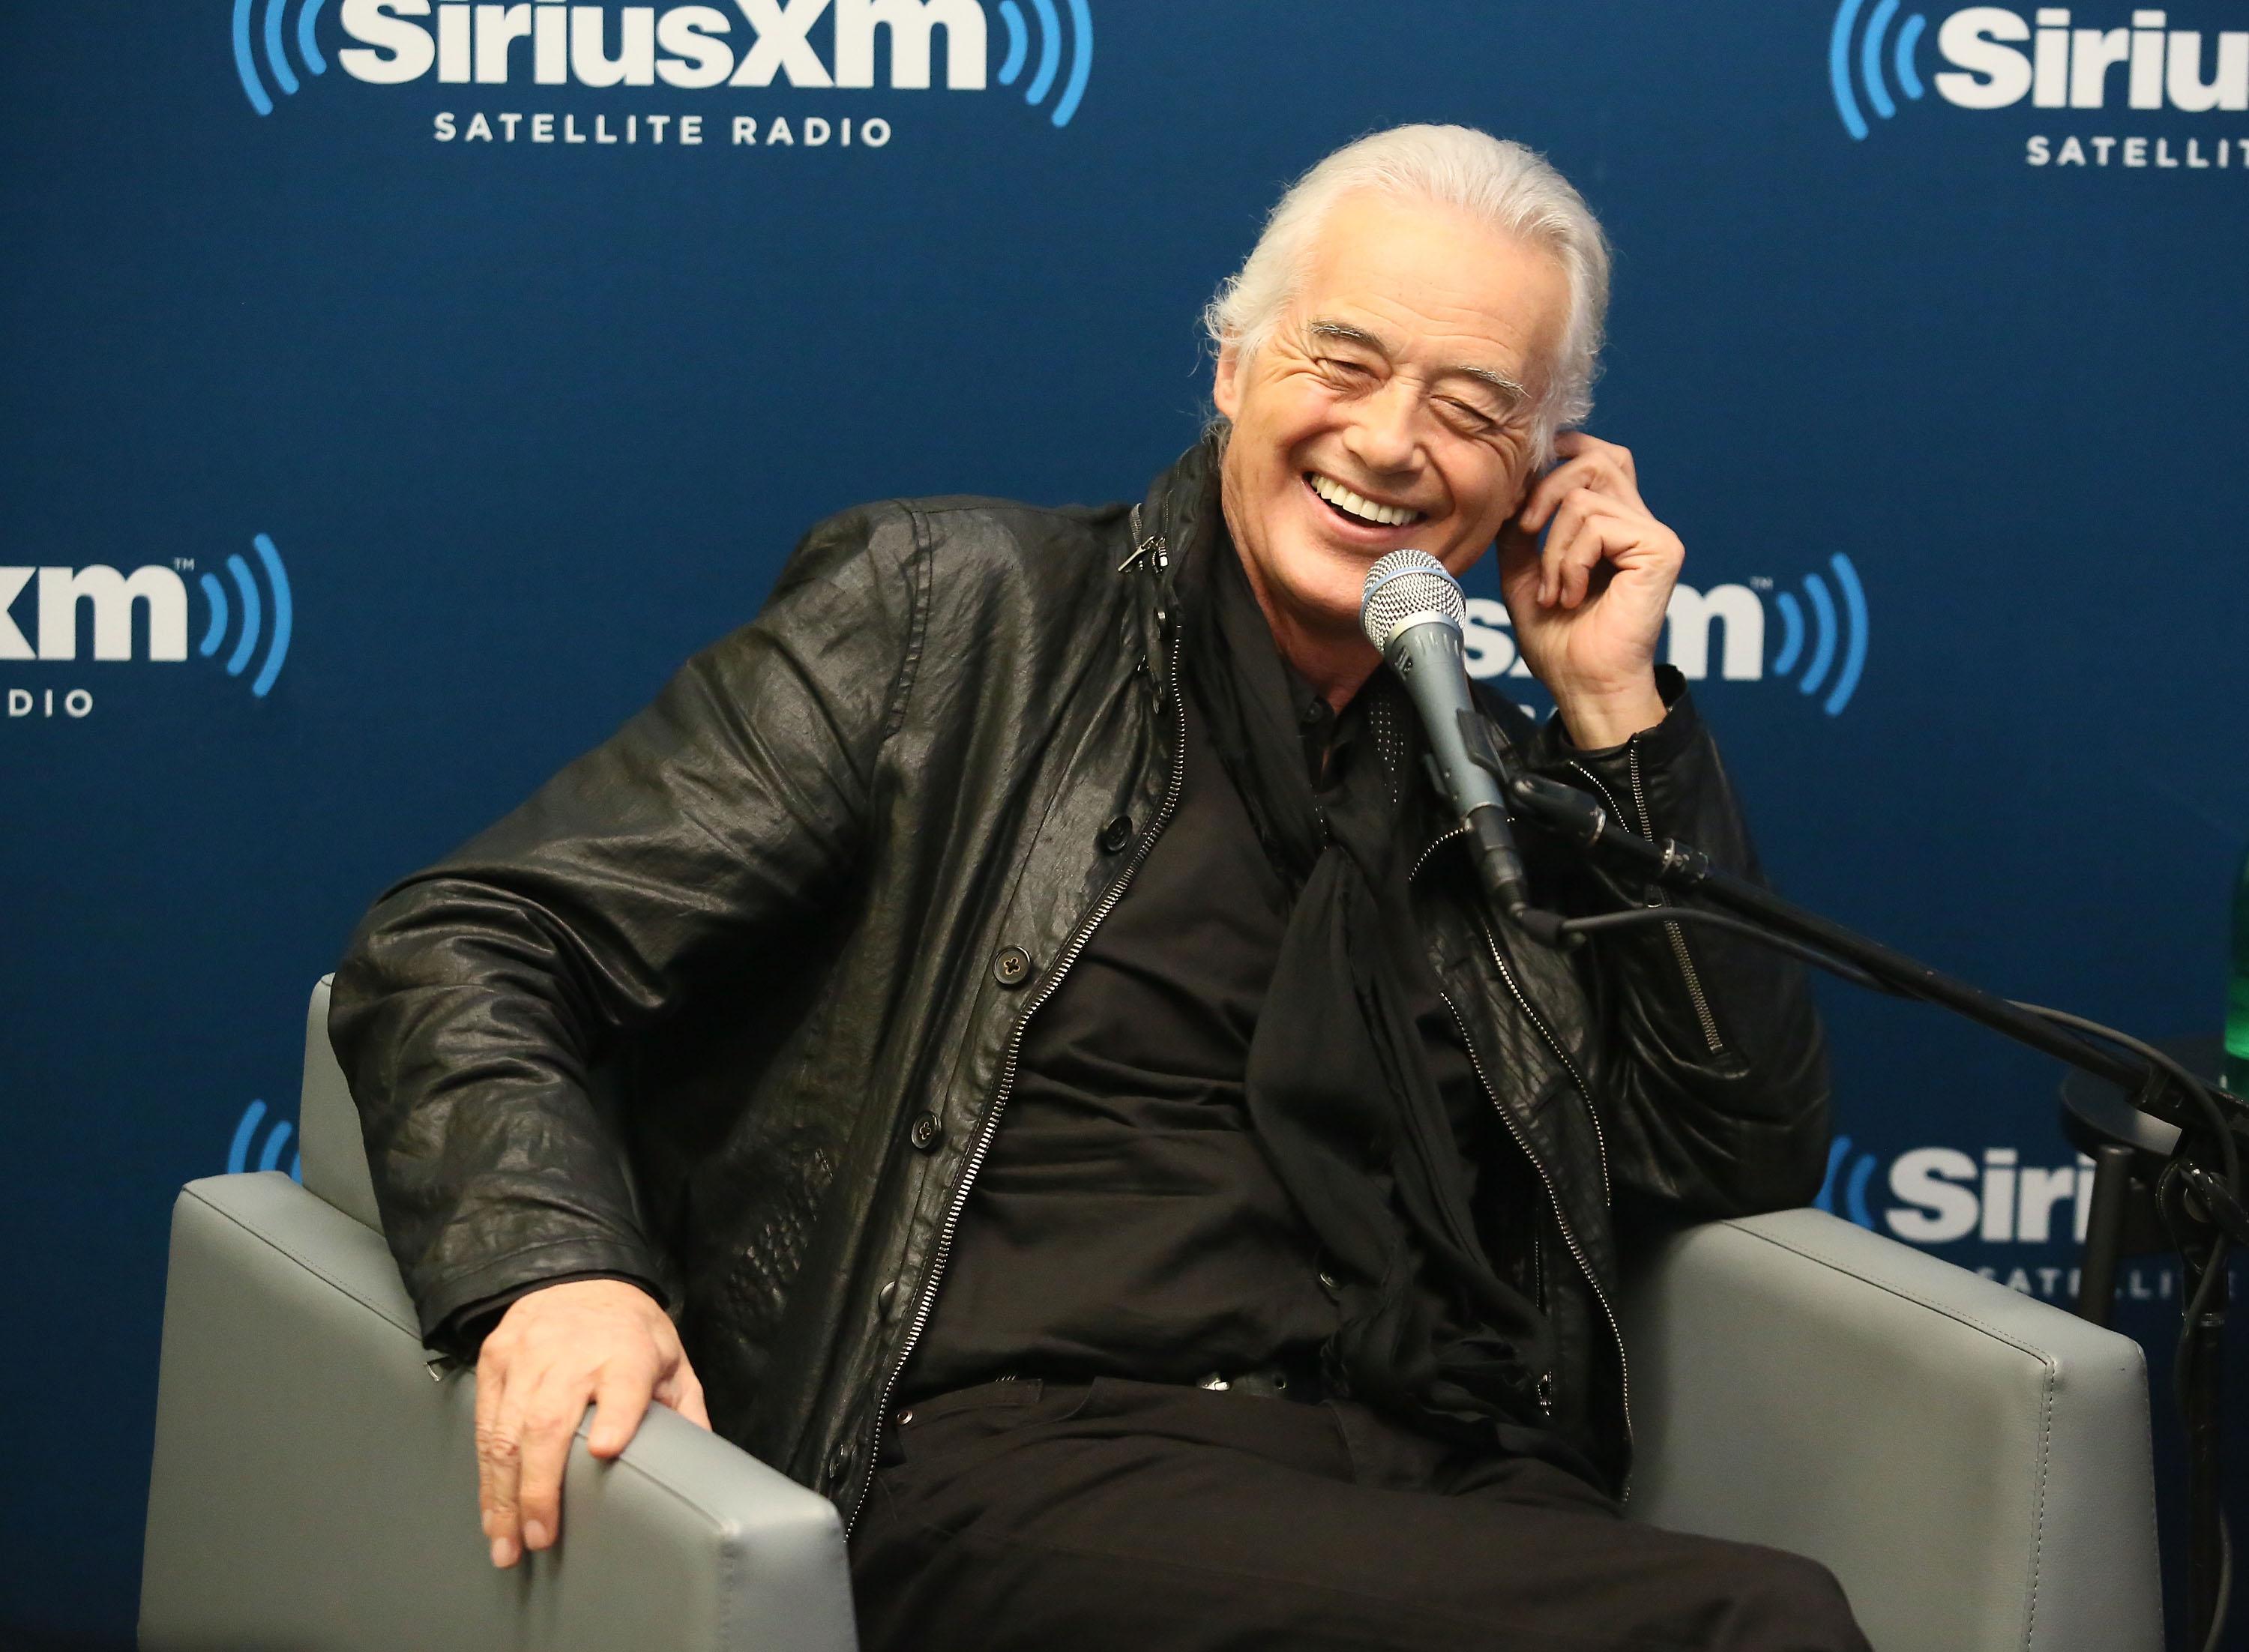 5 Things We Learned From Jimmy Page's SiriusXM Interview